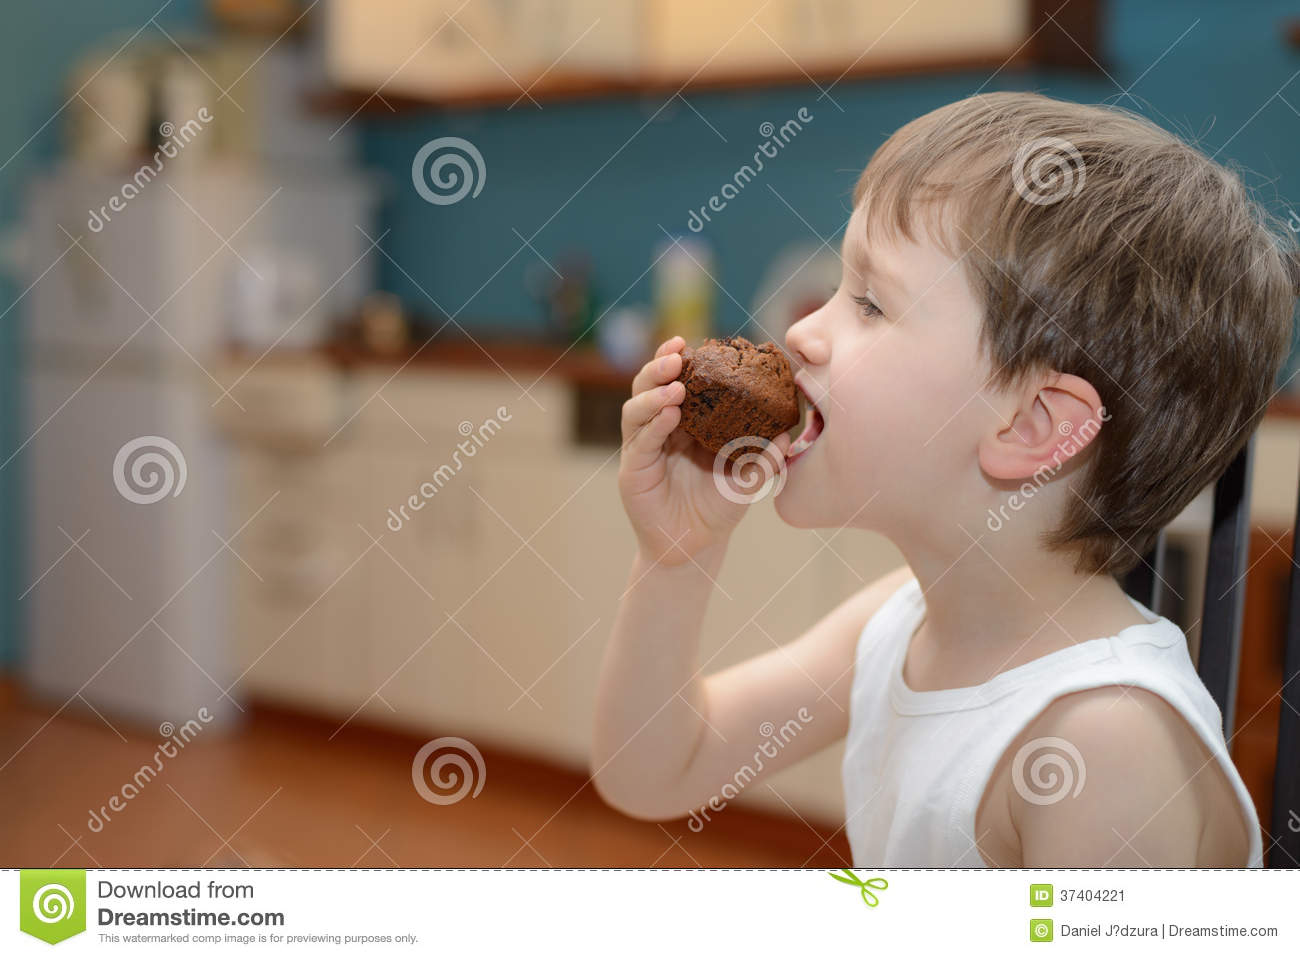 4 year old boy eats chocolate muffin